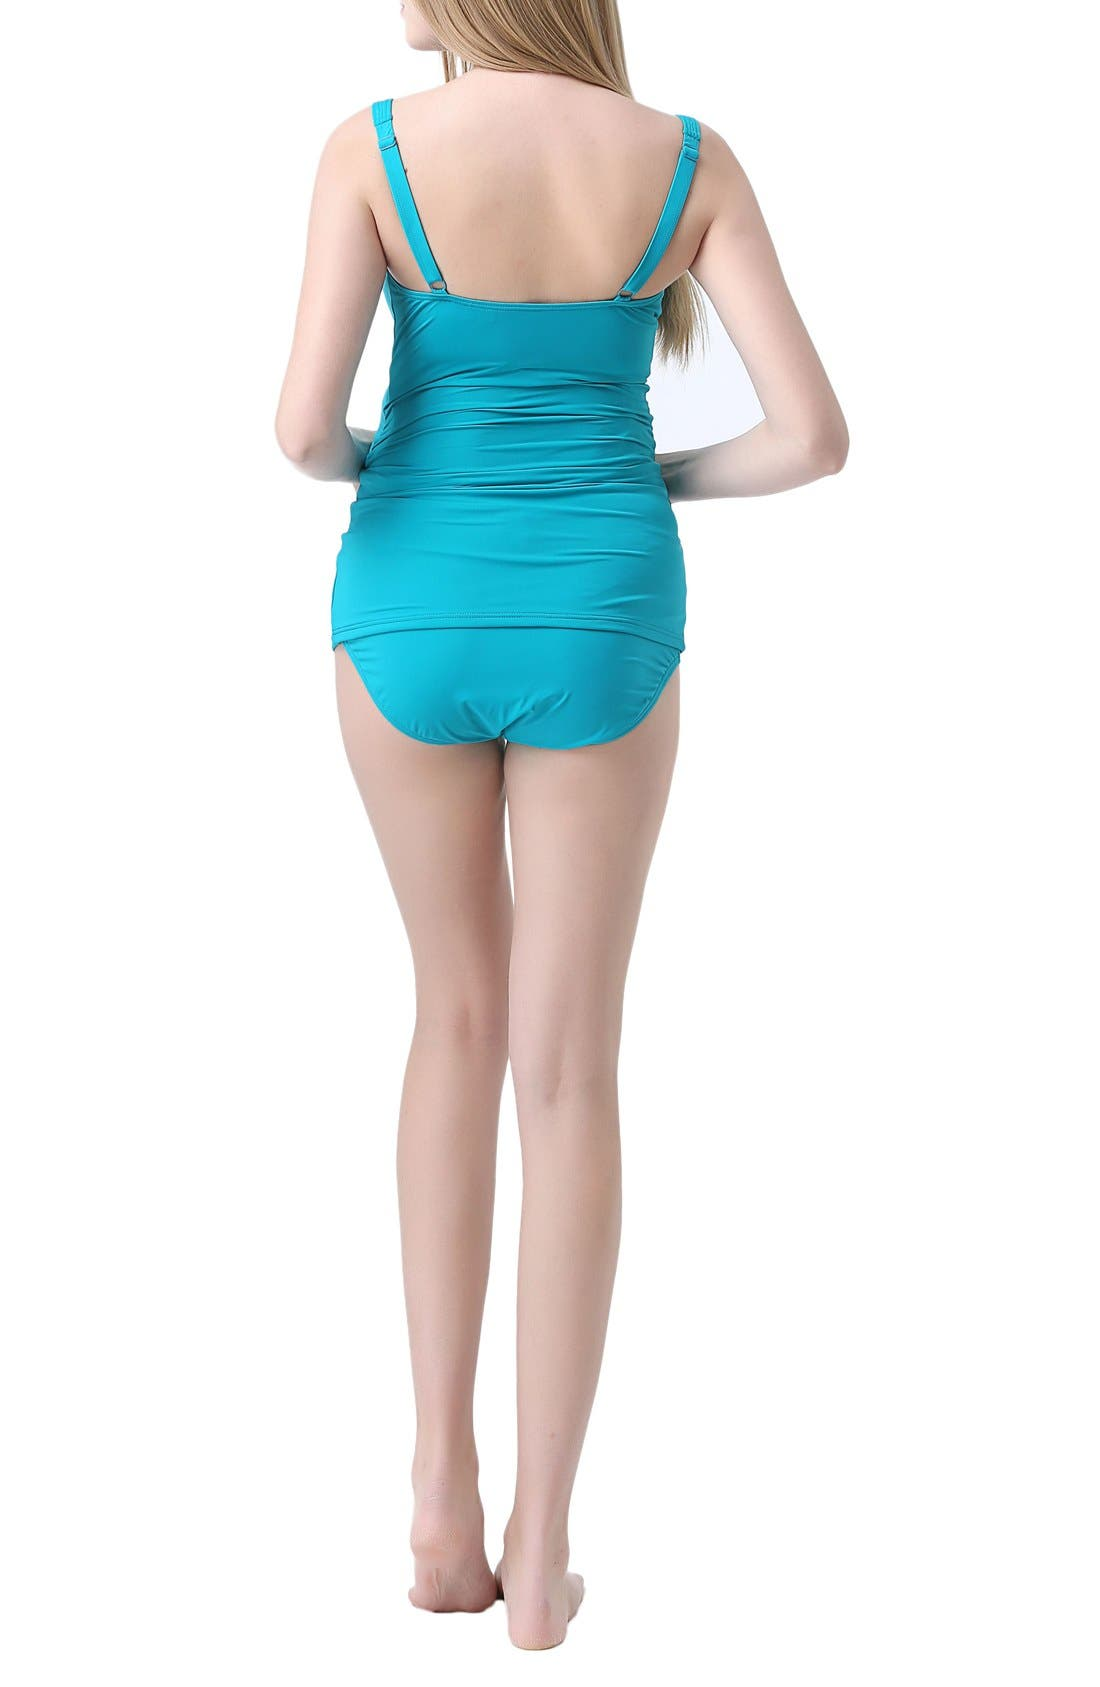 'Milly' Maternity Two-Piece Tankini Swimsuit,                             Alternate thumbnail 2, color,                             TEAL